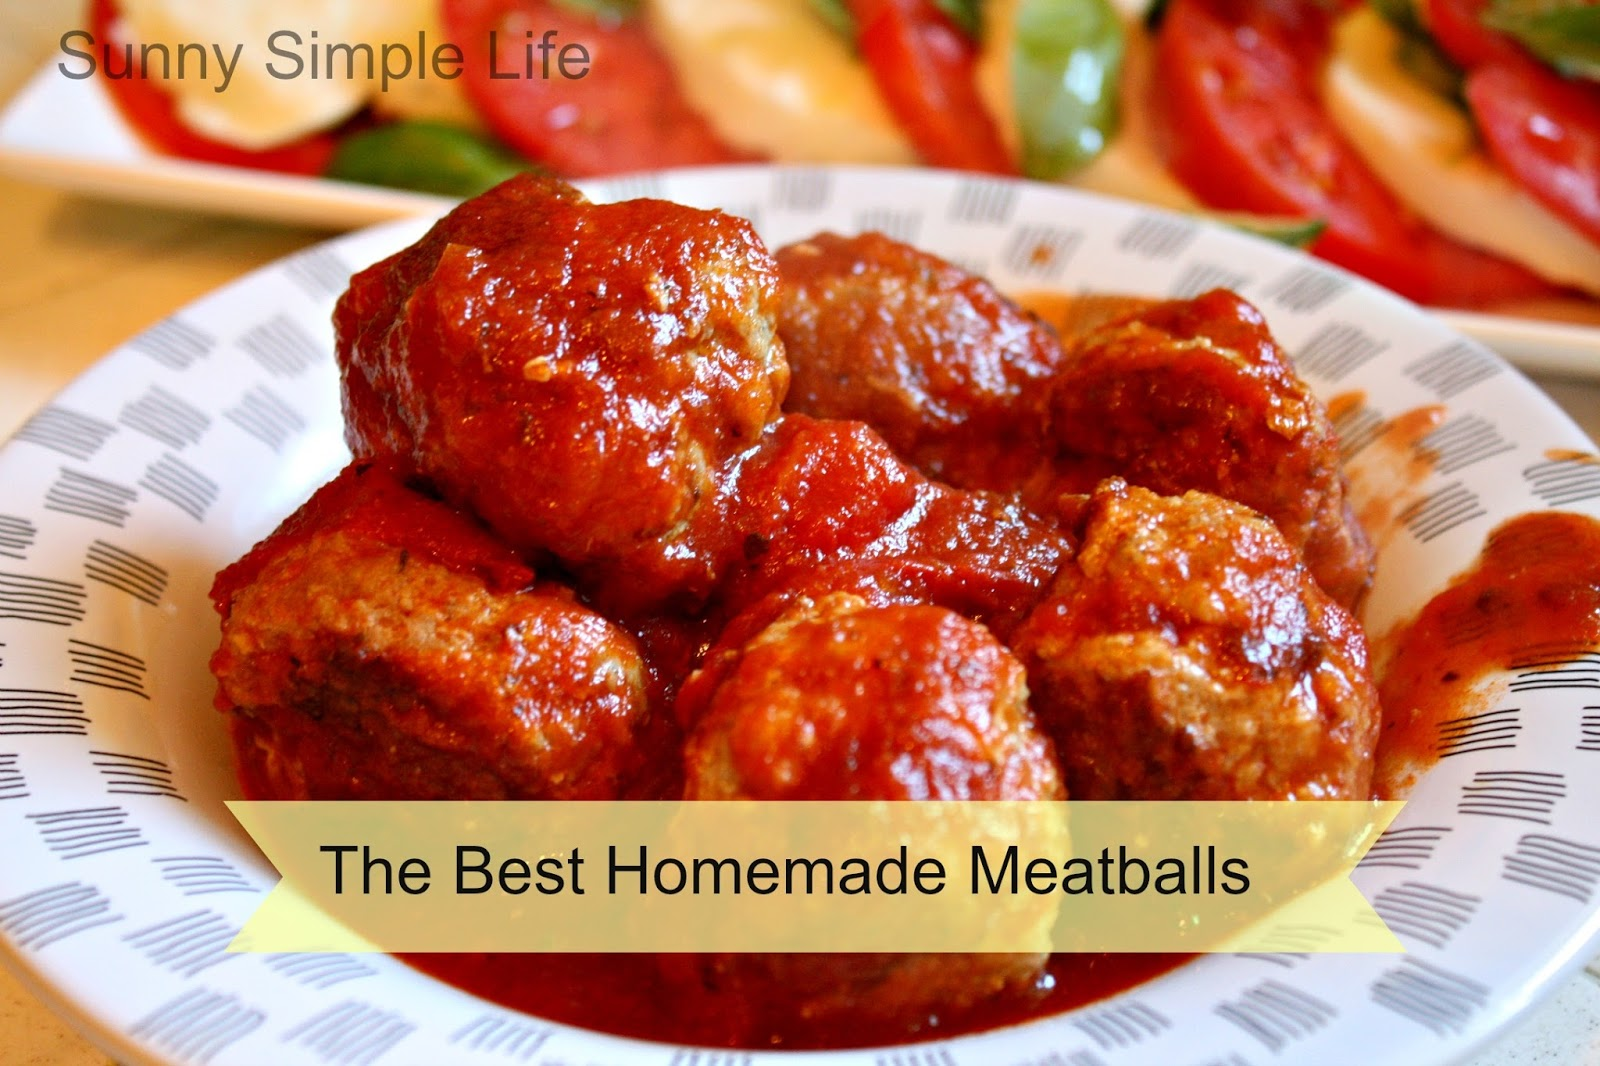 Sunny Simple Life: Homemade Meatballs